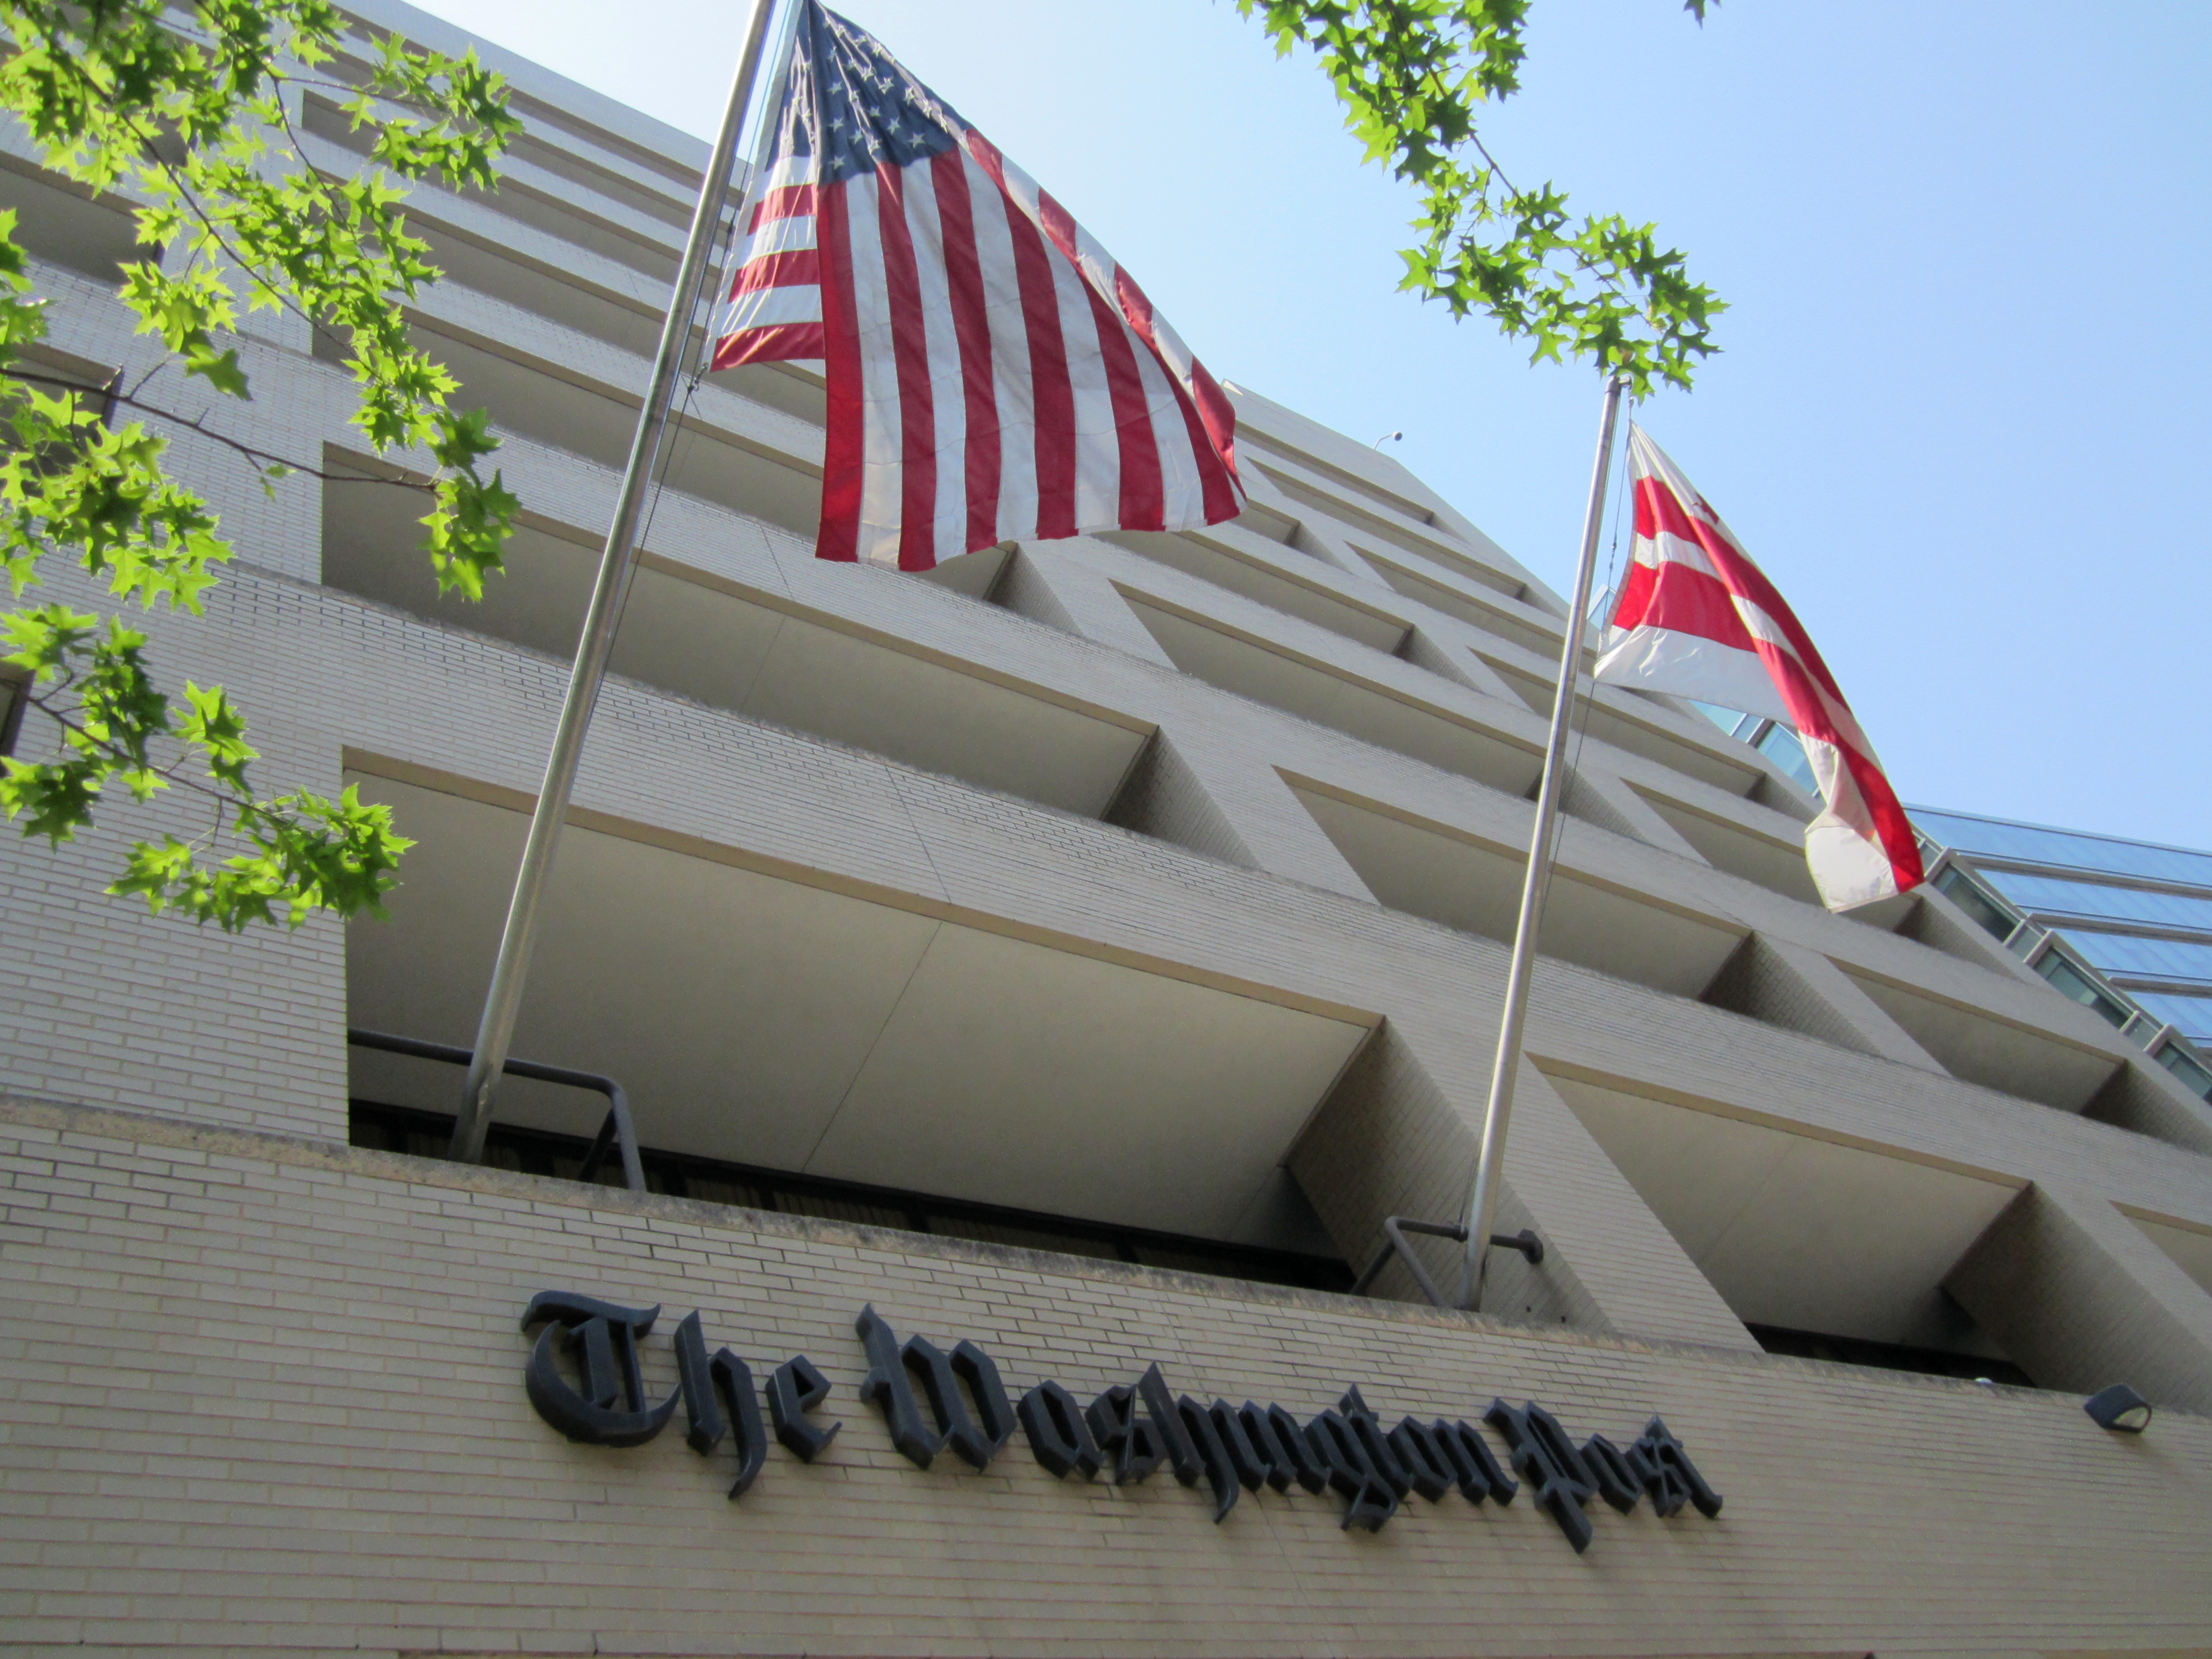 Image result for PHOTOS OF THE WASHINGTON POST BUILDING